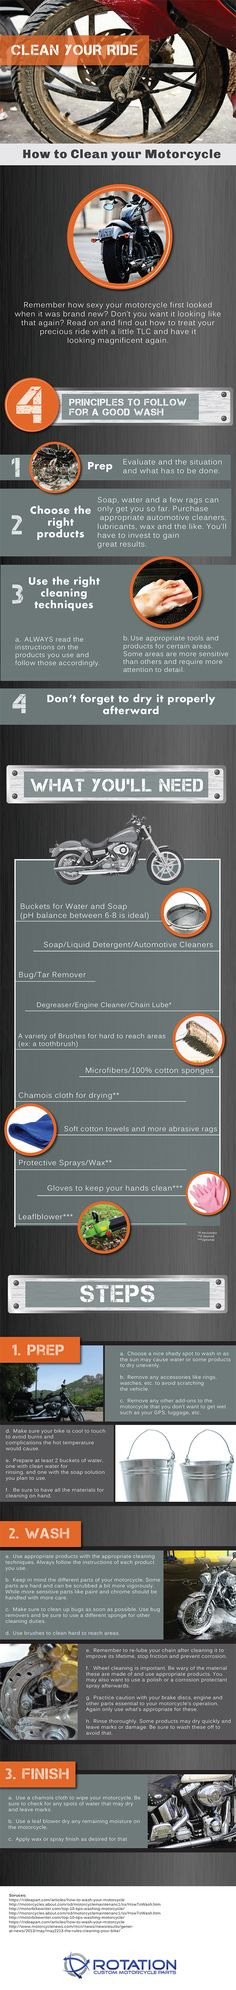 How to Clean your Motorcycle #infographic #HowTo #DIY #Motorcycle